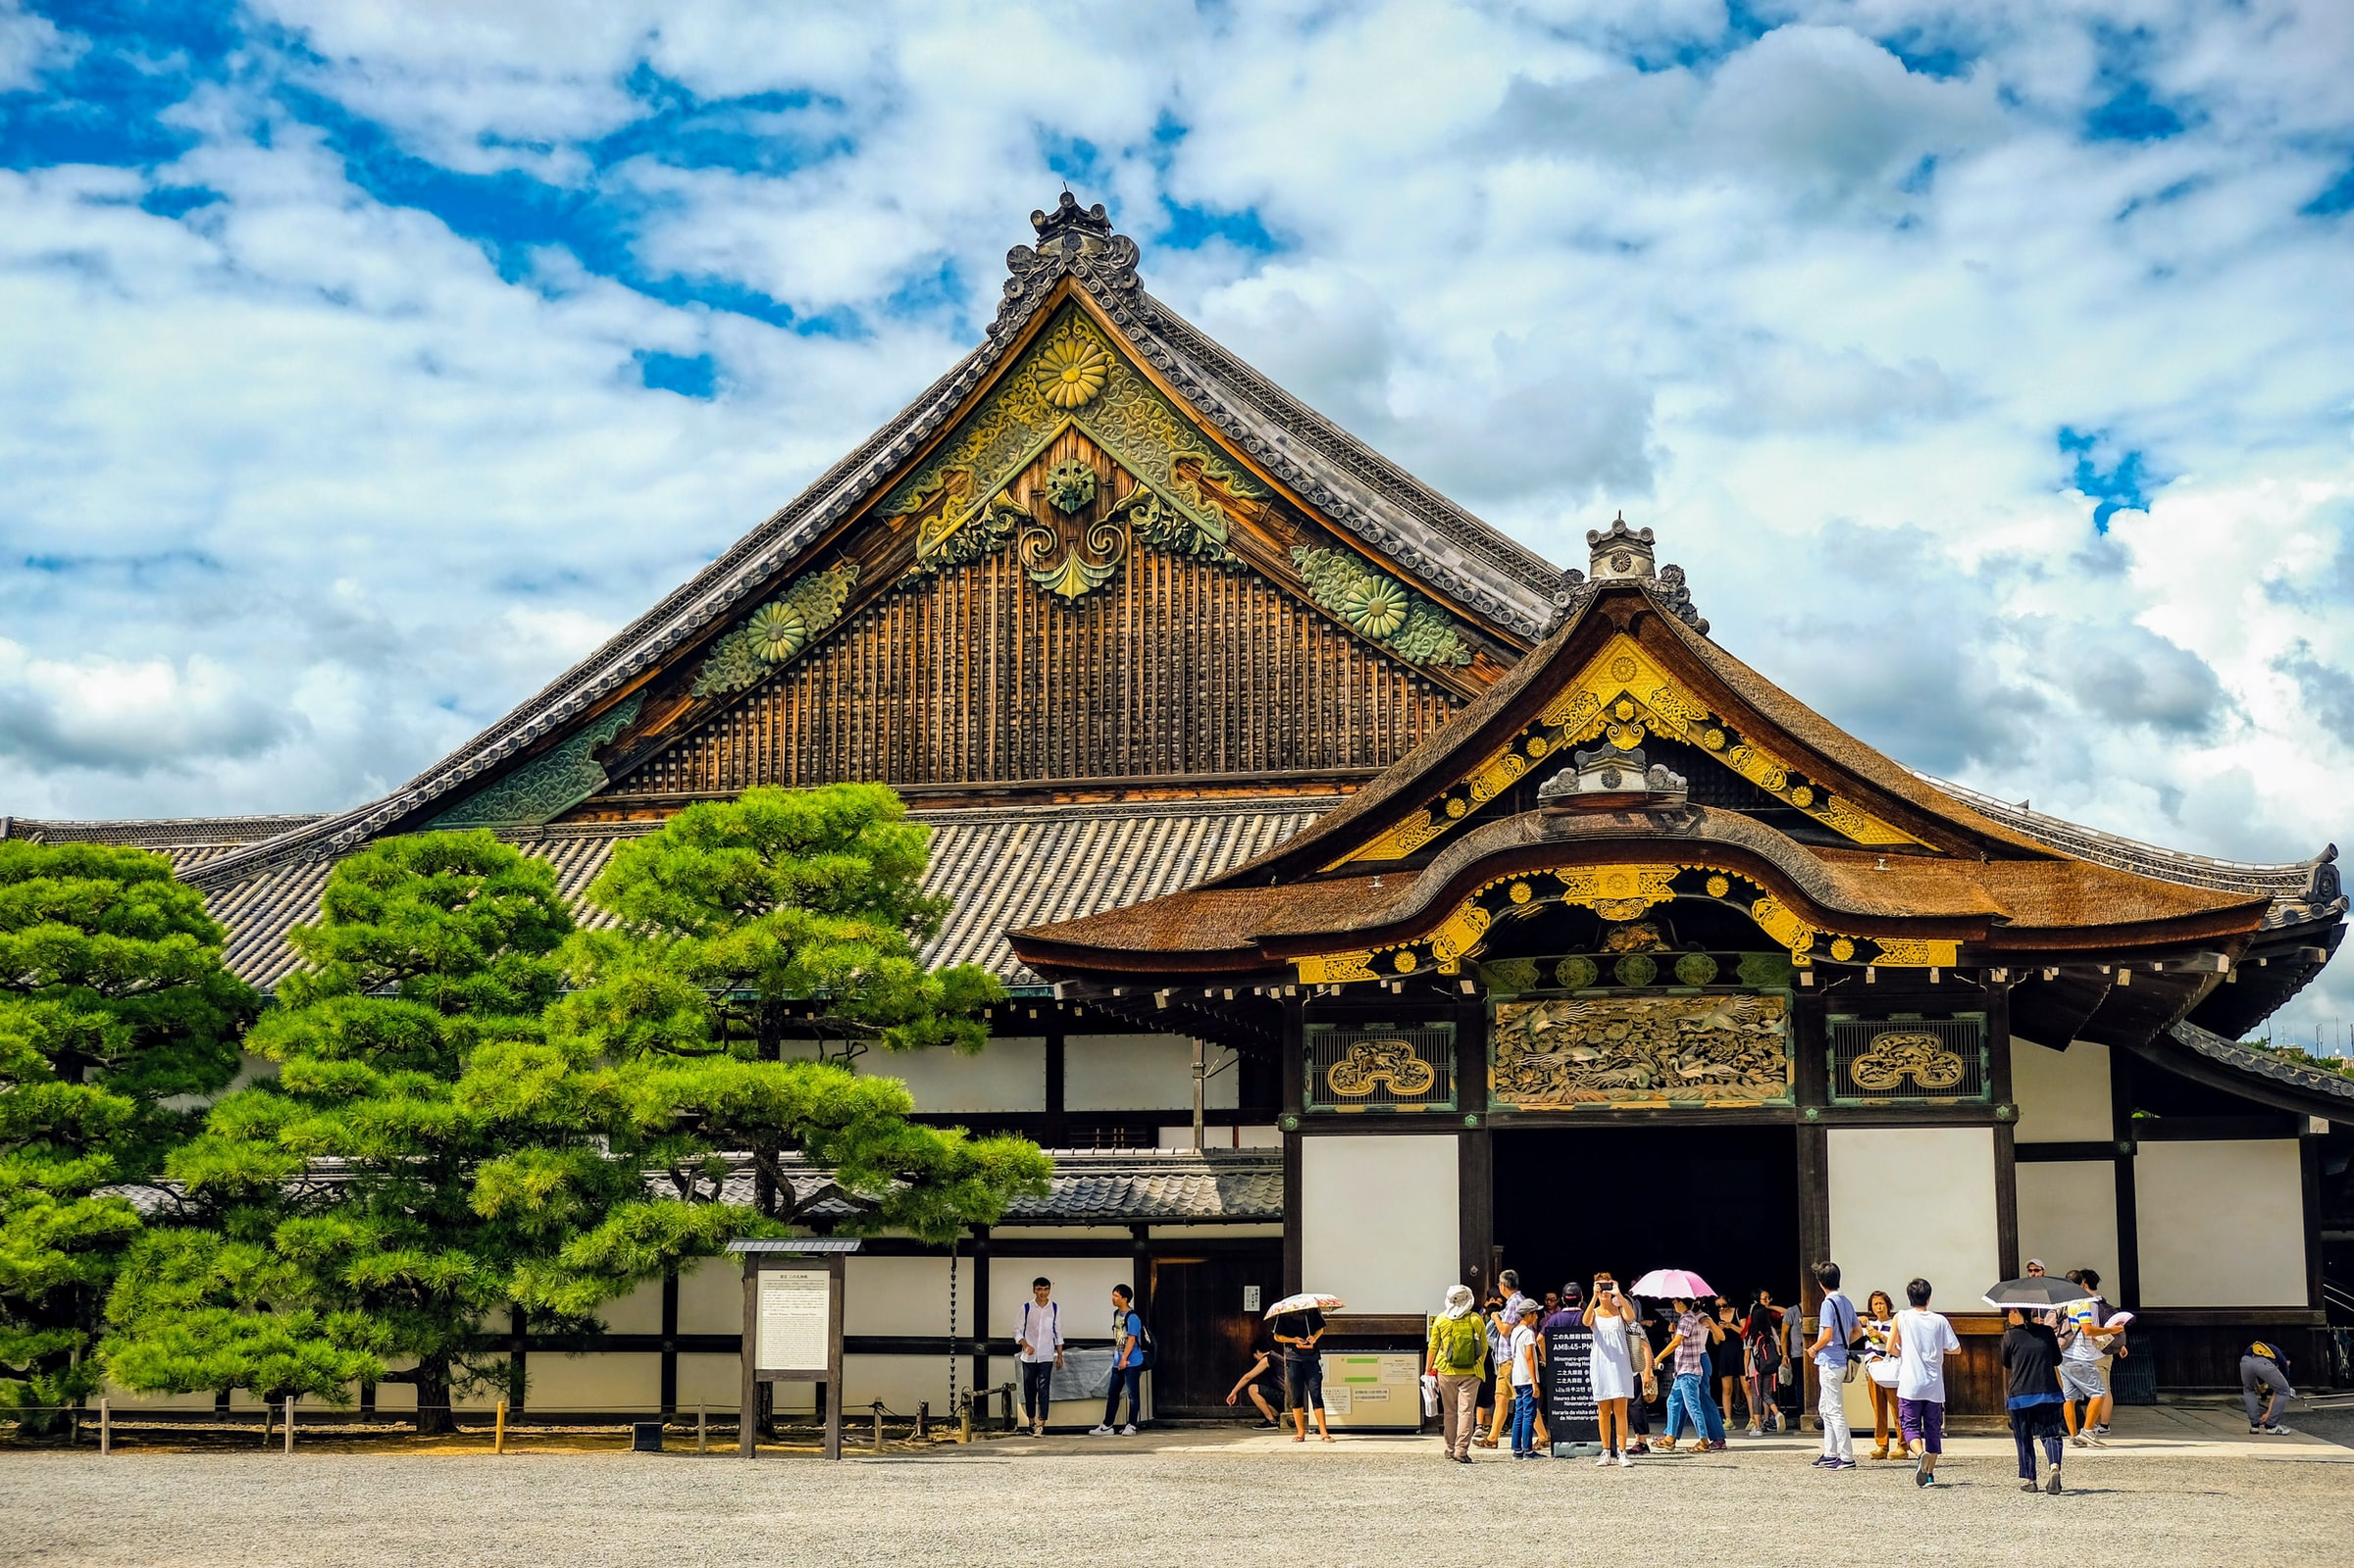 10 Things To Do In Kyoto Prefecture, Japan [with Suggested Tours] 09